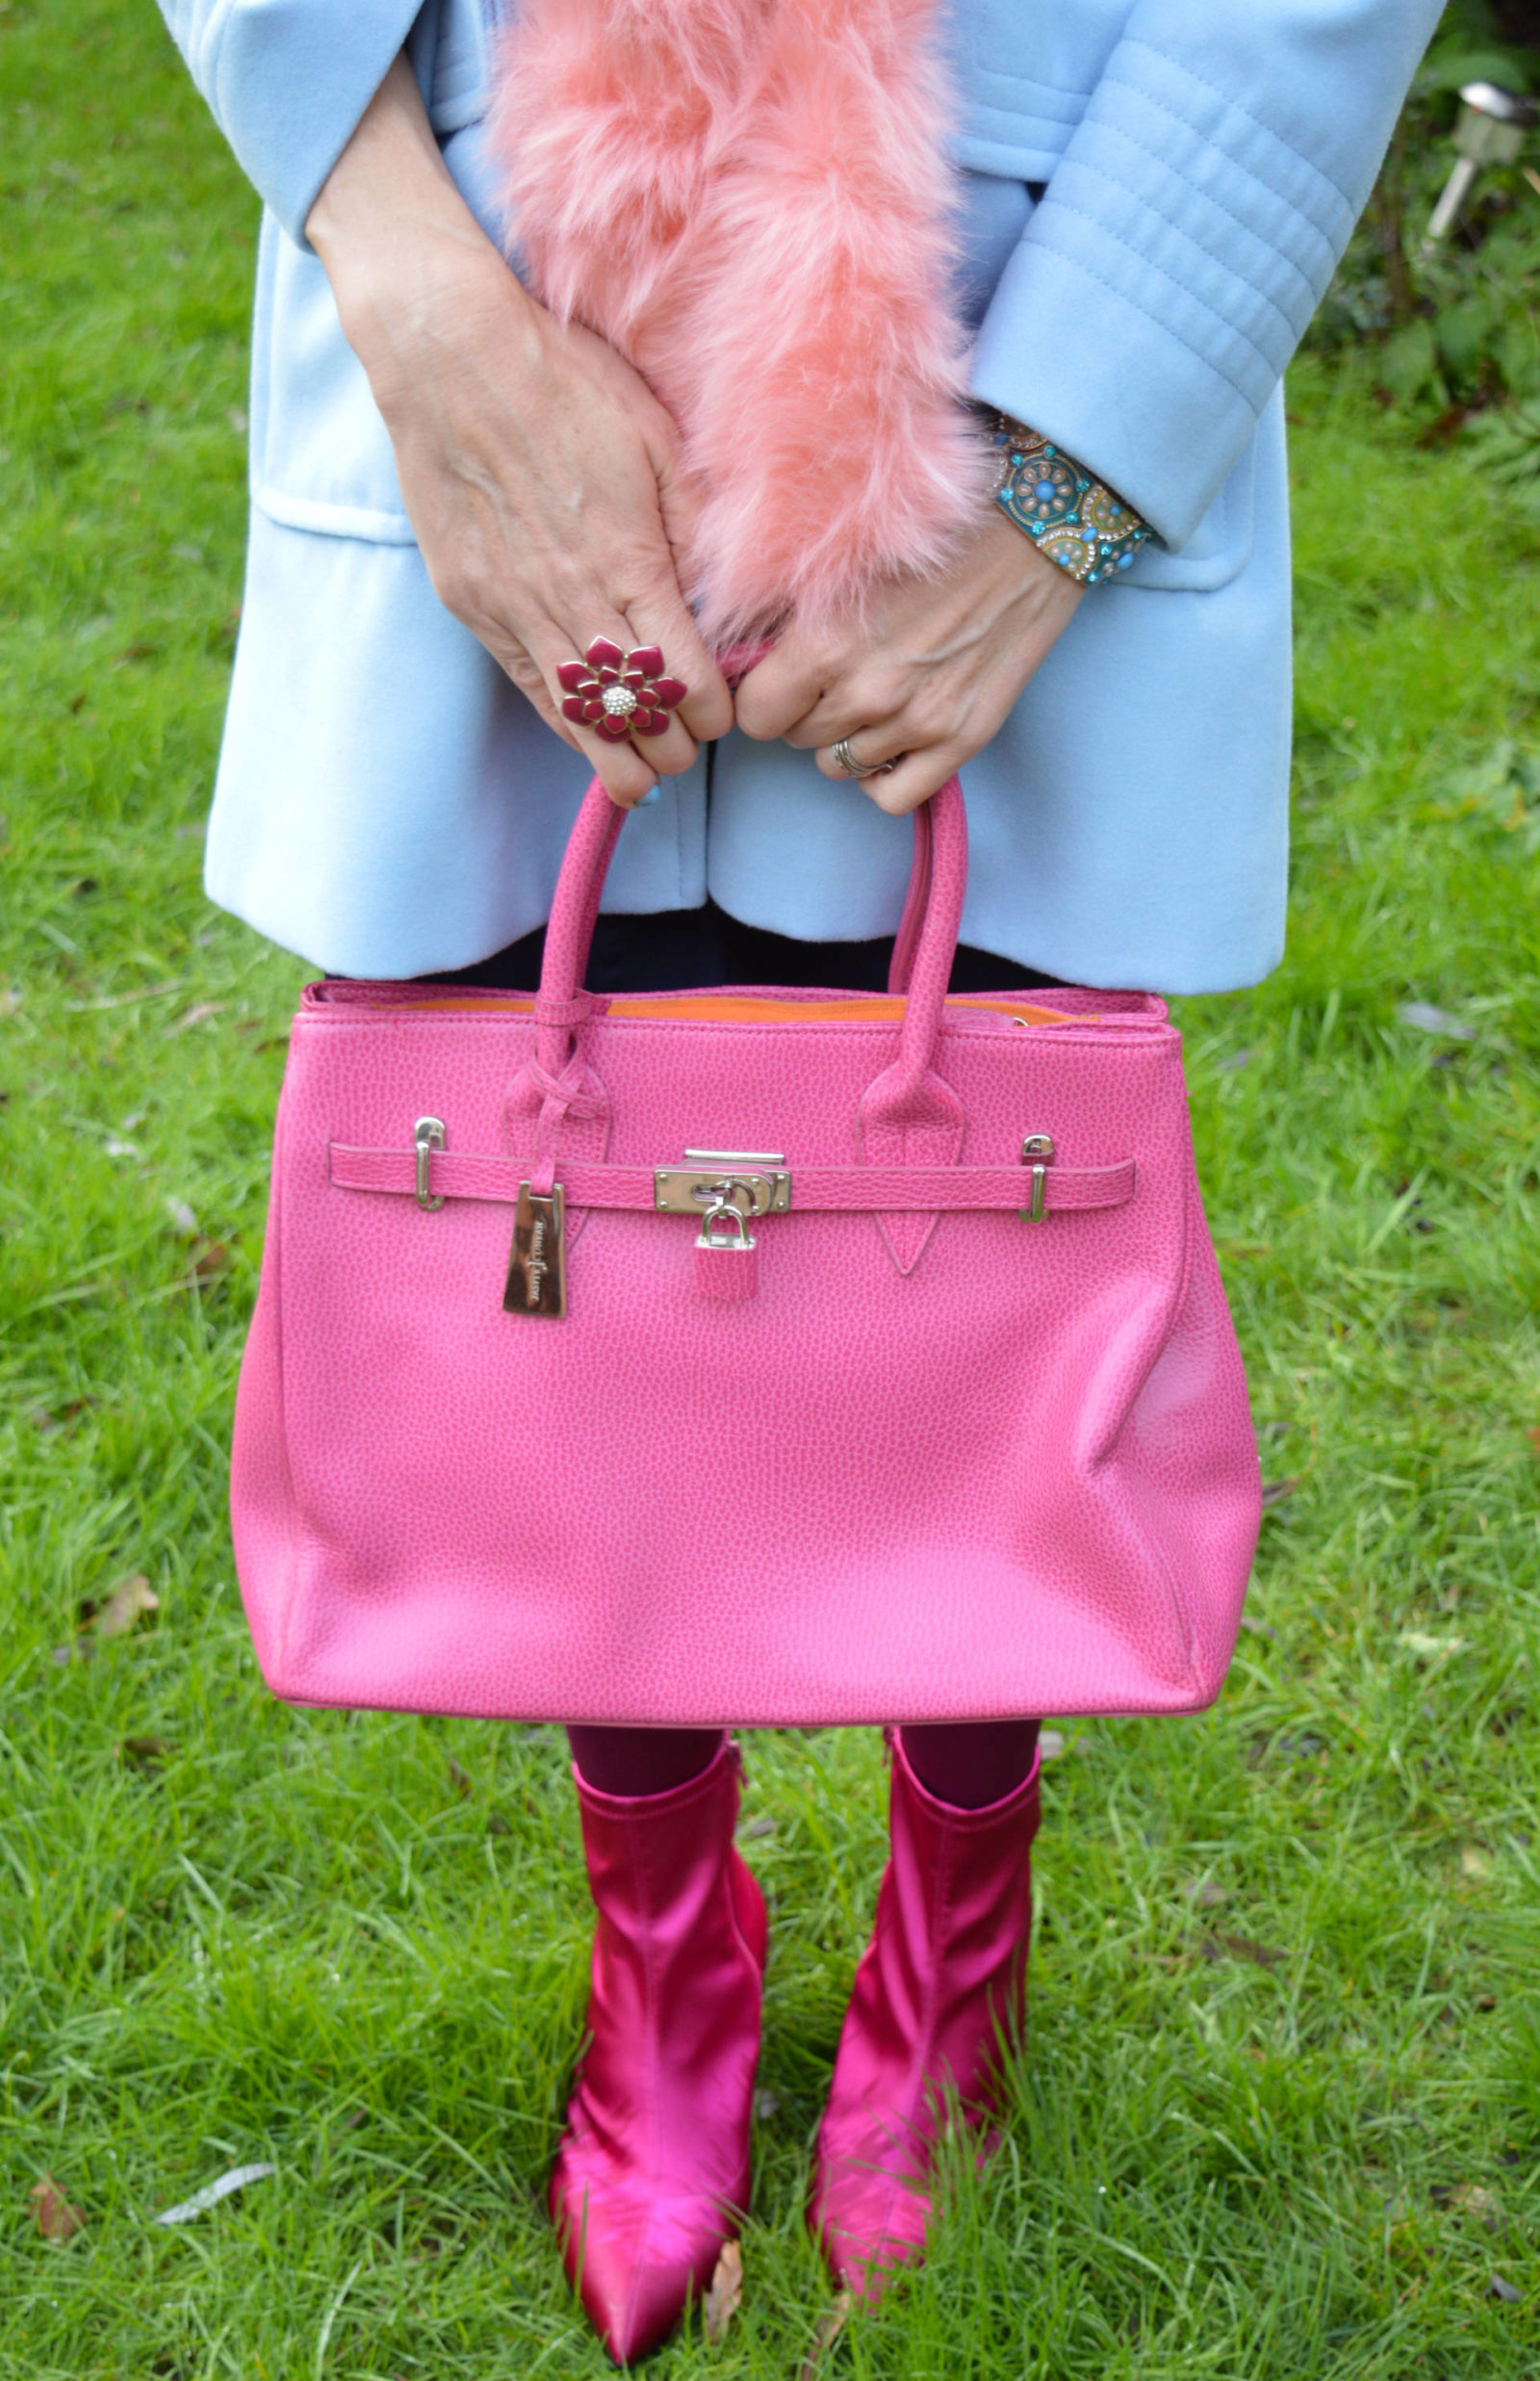 J by Jasper Conran pink tote bag